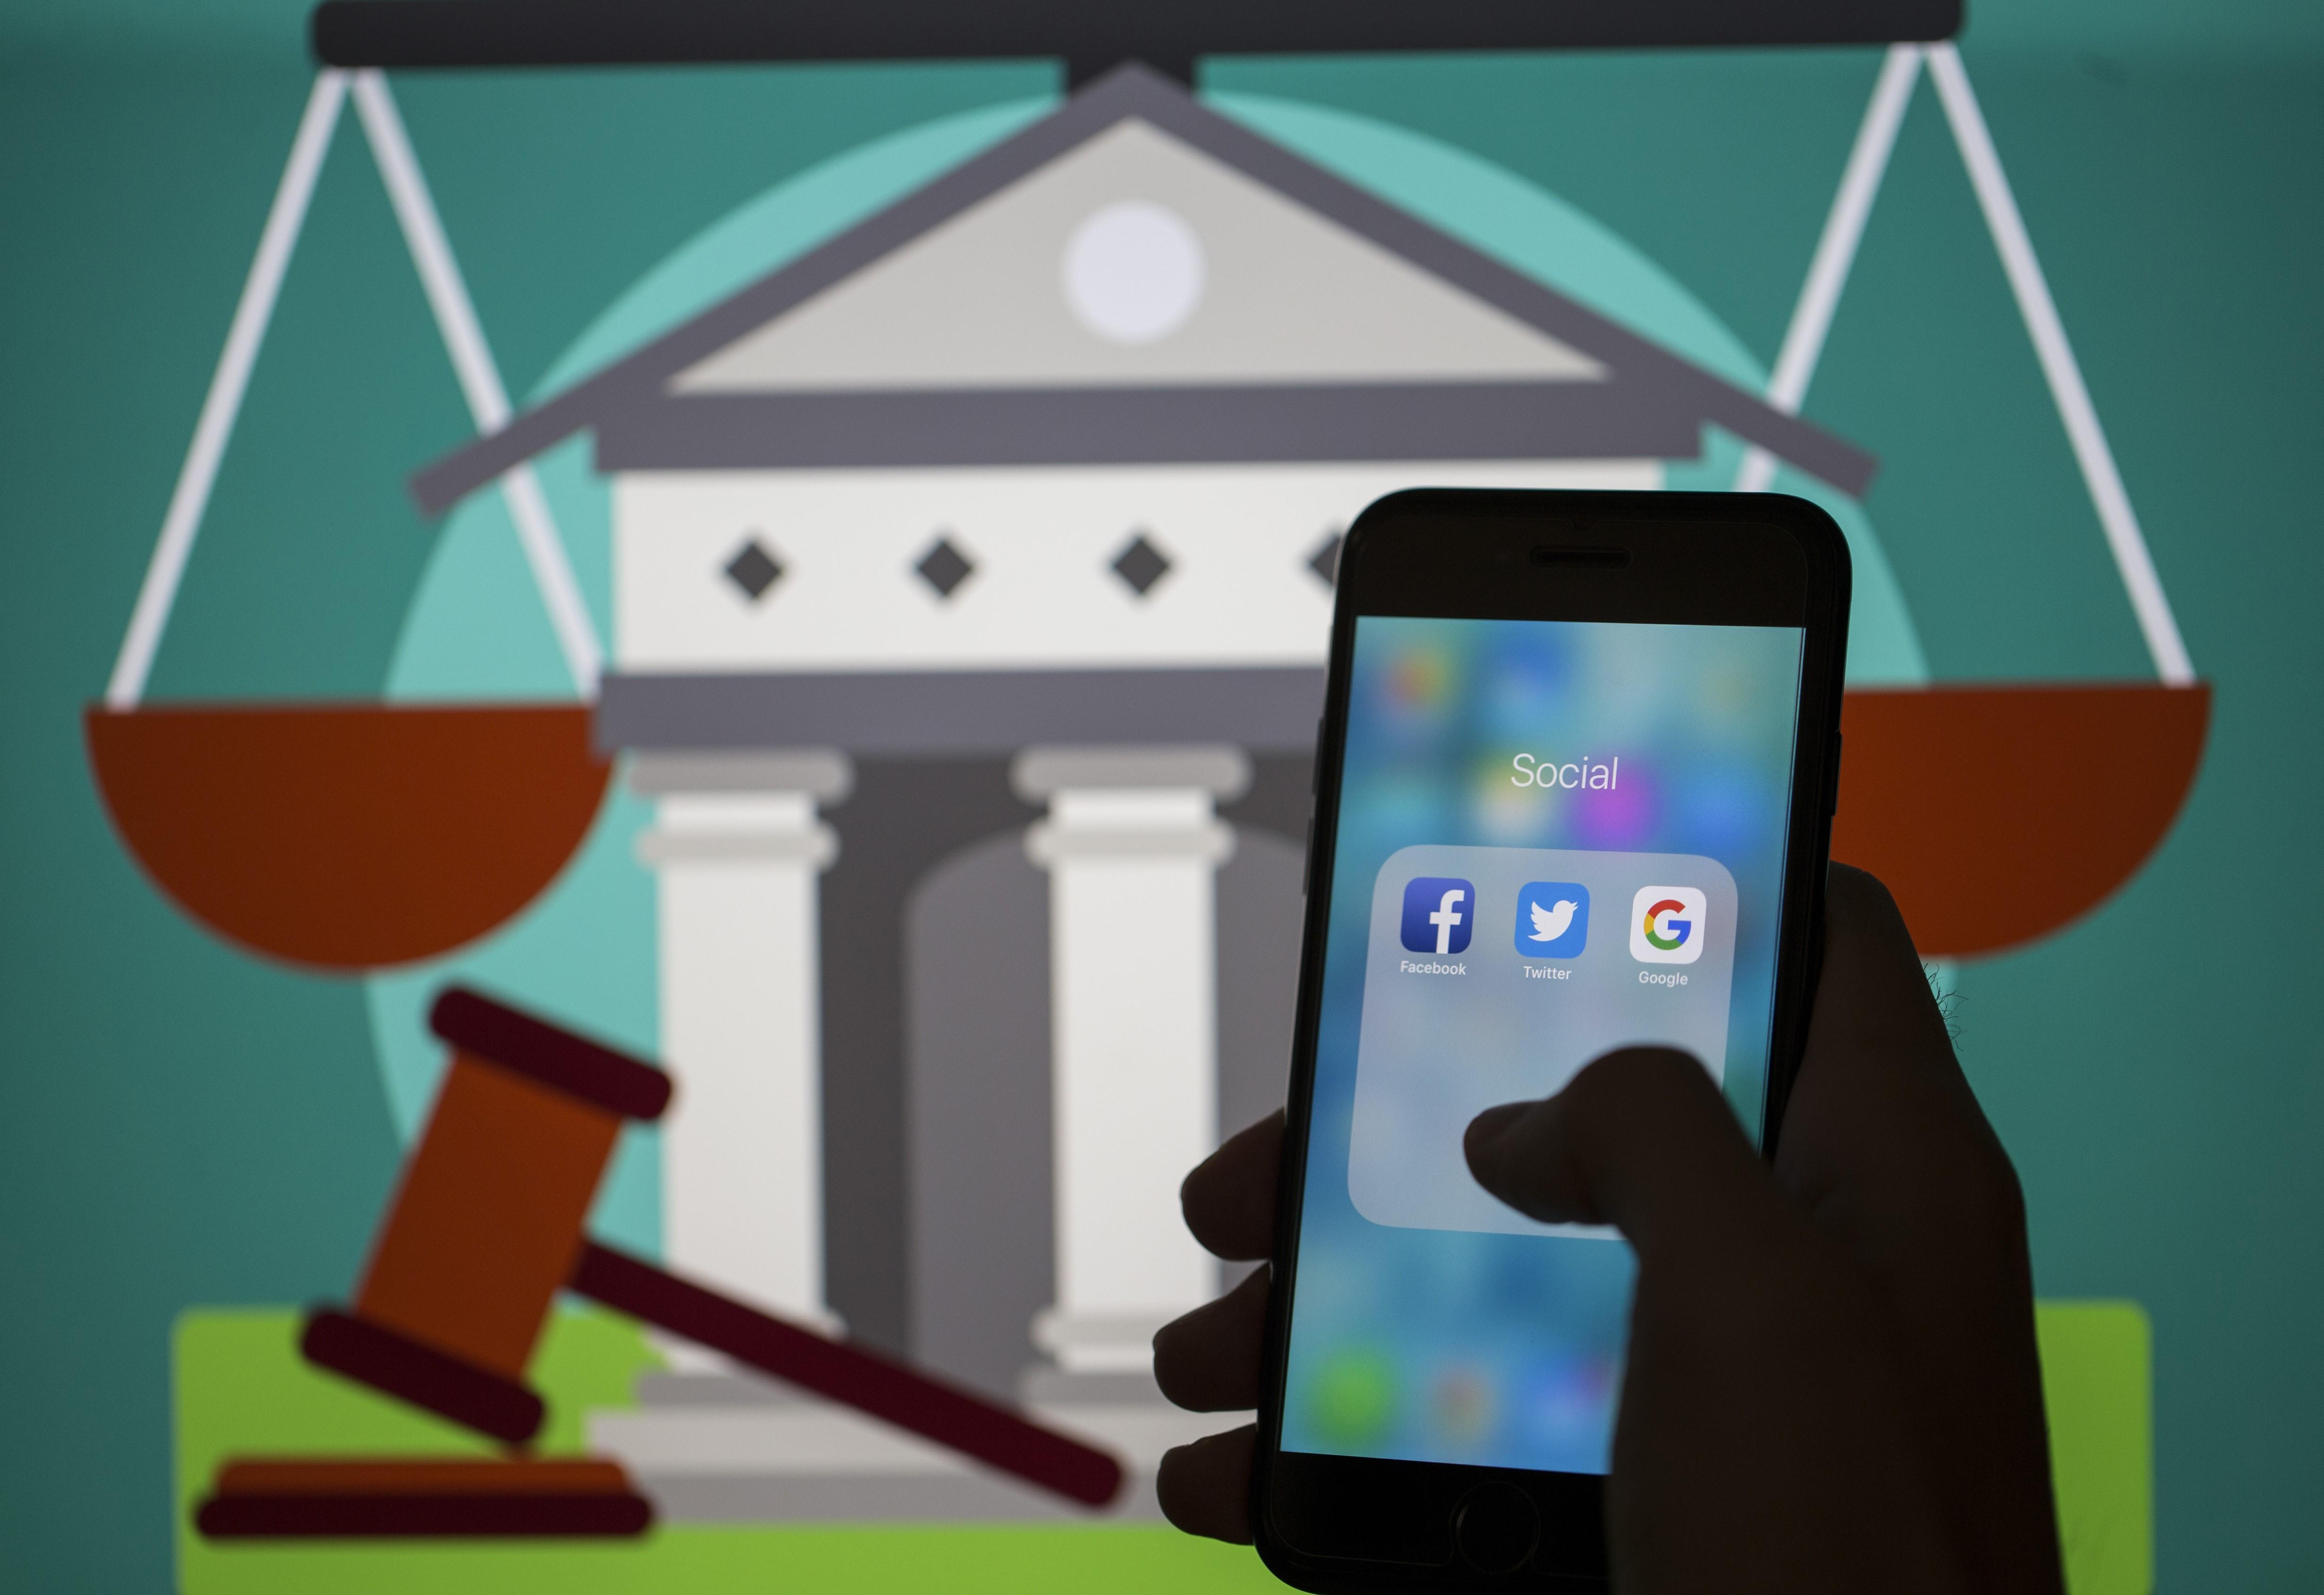 <p>ANKARA, TURKEY - SEPTEMBER 5: A smart phone with the icons for the Facebook, Twitter, Google applications is seen in Ankara, Turkey on September 5, 2018.</p>